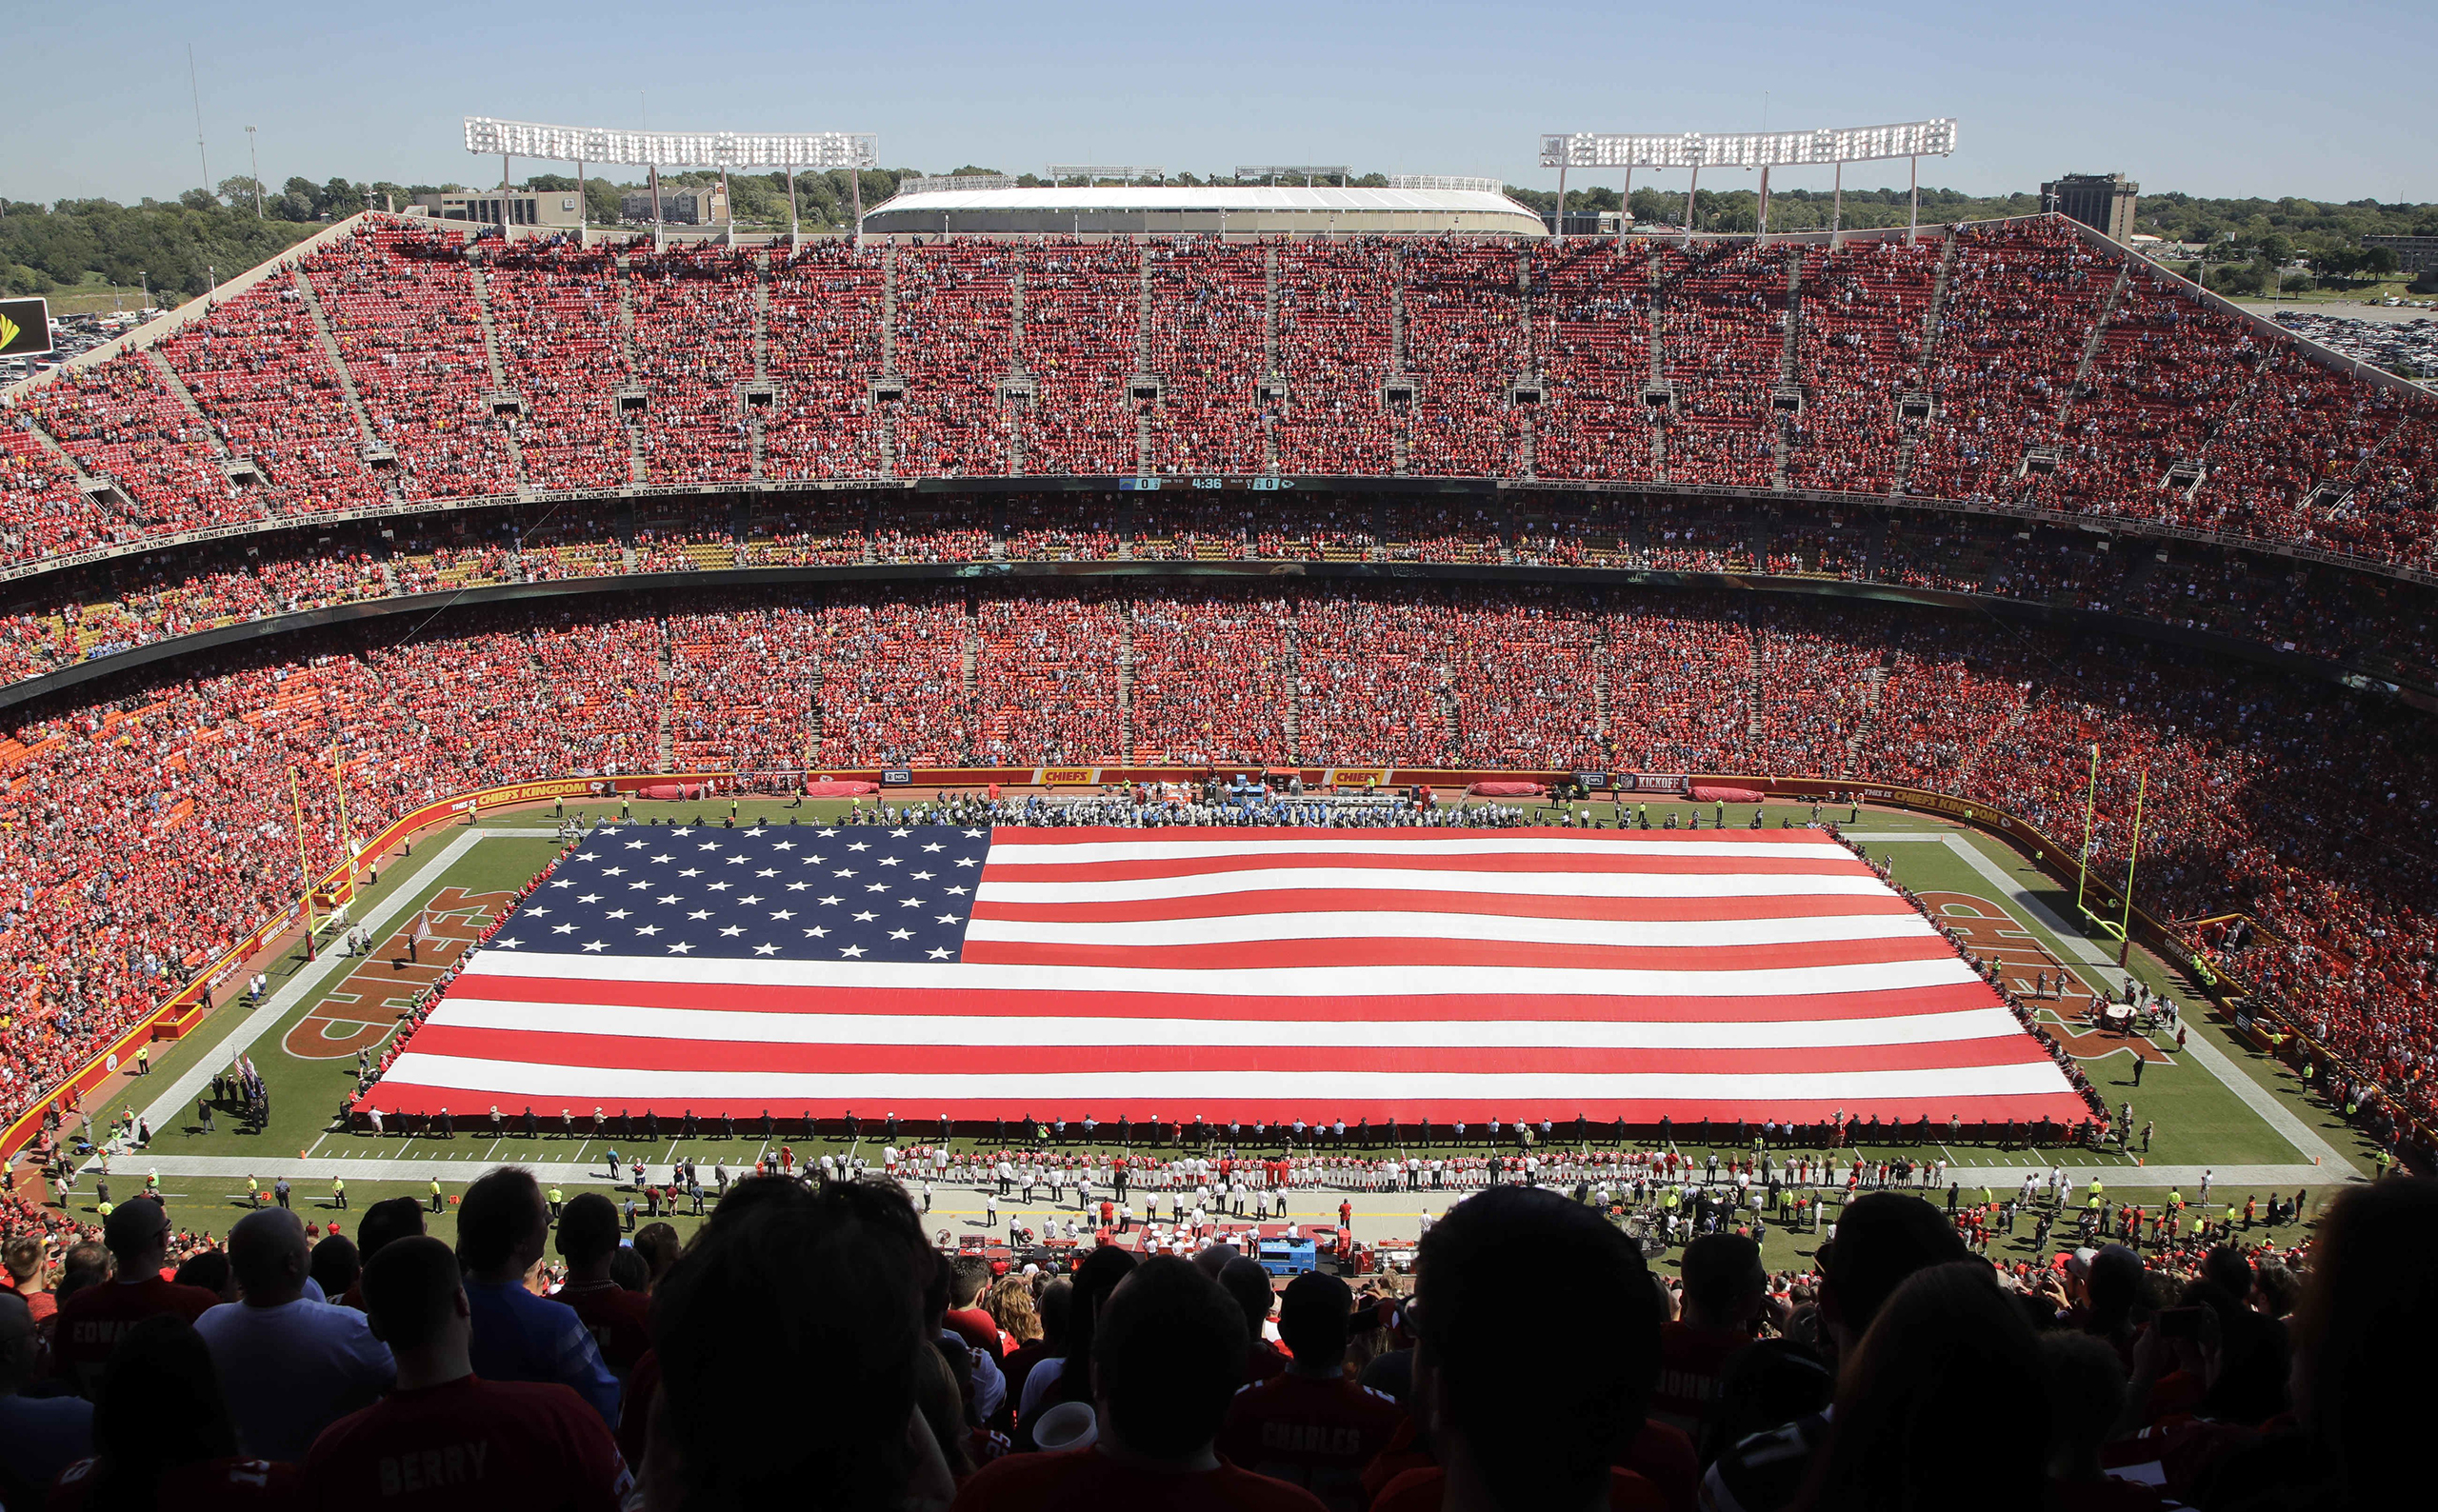 A giant flag is spread over the field at Arrowhead Stadium to commemorate Sept. 11, before an NFL football game between the Kansas City Chiefs and the San Diego Chargers in Kansas City, Missouri, Sept. 11, 2016.